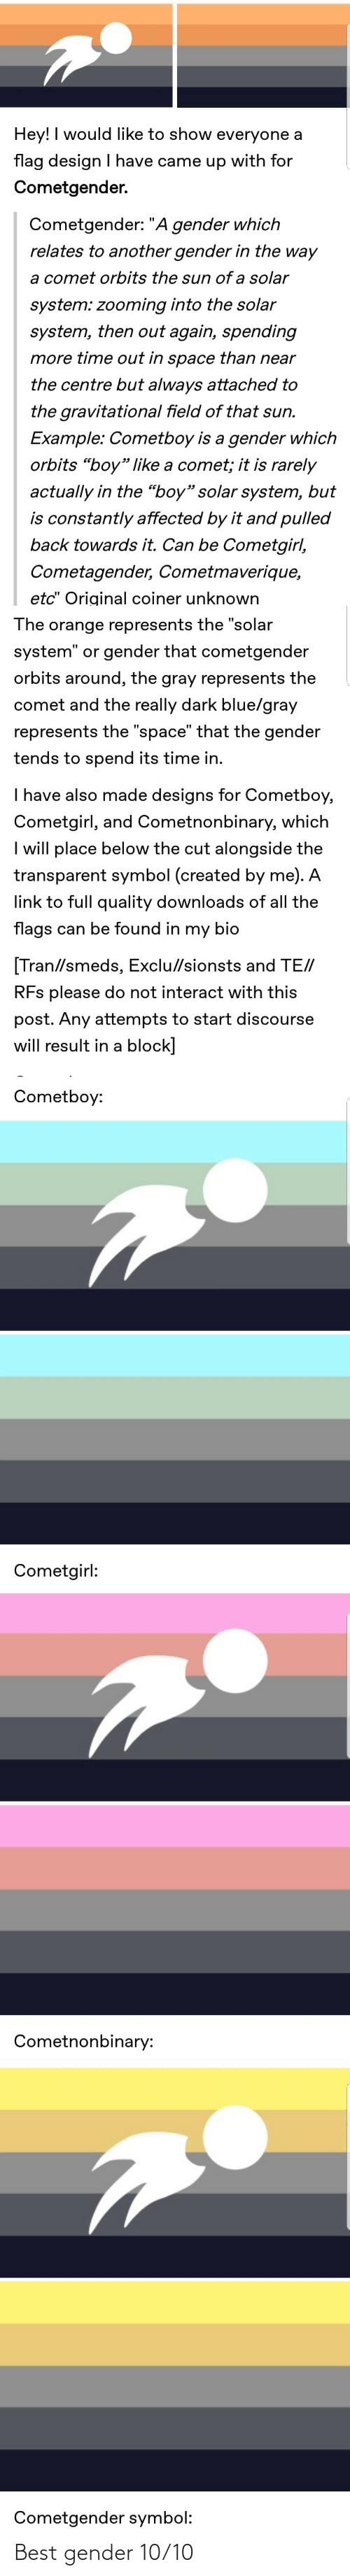 """Solar System: Hey! I would like to show everyone a  flag design I have came up with for  Cometgender.  Cometgender: """"A gender which  relates to another gender in the way  a comet orbits the sun of a solar  system: zooming into the solar  system, then out again, spending  more time out in space than near  the centre but always attached to  the gravitational field of that sun.  Example: Cometboy is a gender which  orbits """"boy"""" like a comet; it is rarely  actually in the """"boy"""" solar system, but  is constantly affected by it and pulled  back towards it. Can be Cometgirl,  Cometagender, Cometmaverique,  etc"""" Original coiner unknown  The orange represents the """"solar  system"""" or gender that cometgender  orbits around, the gray represents the  comet and the really dark blue/gray  represents the """"space"""" that the gender  tends to spend its time in.  I have also made designs for Cometboy,  Cometgirl, and Cometnonbinary, which  I will place below the cut alongside the  transparent symbol (created by me). A  link to full quality downloads of all the  flags can be found in my bio  [Tran//smeds, Exclu//sionsts and TE//  RFs please do not interact with this  post. Any attempts to start discourse  will result in a block]  Cometboy:  Cometgirl:  Cometnonbinary:  Cometgender symbol: Best gender 10/10"""